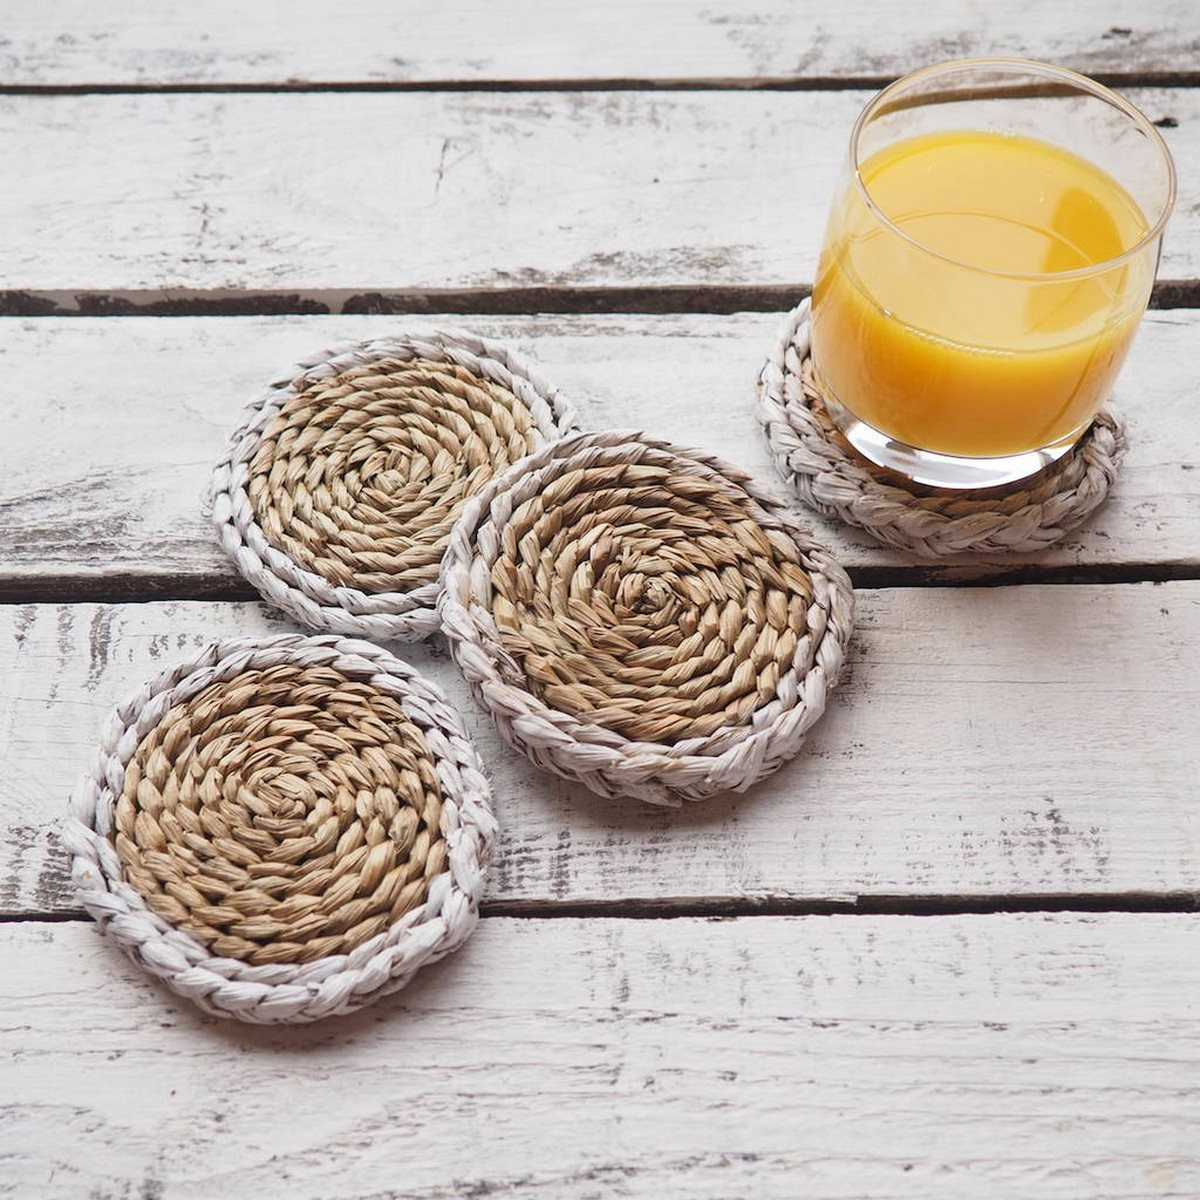 Weaving is extremely popular now, and today we'll have a look at other ways to add weaving to your home decor: potholders, mats, rugs, coasters and other things to bring a slight boho feel to your home.